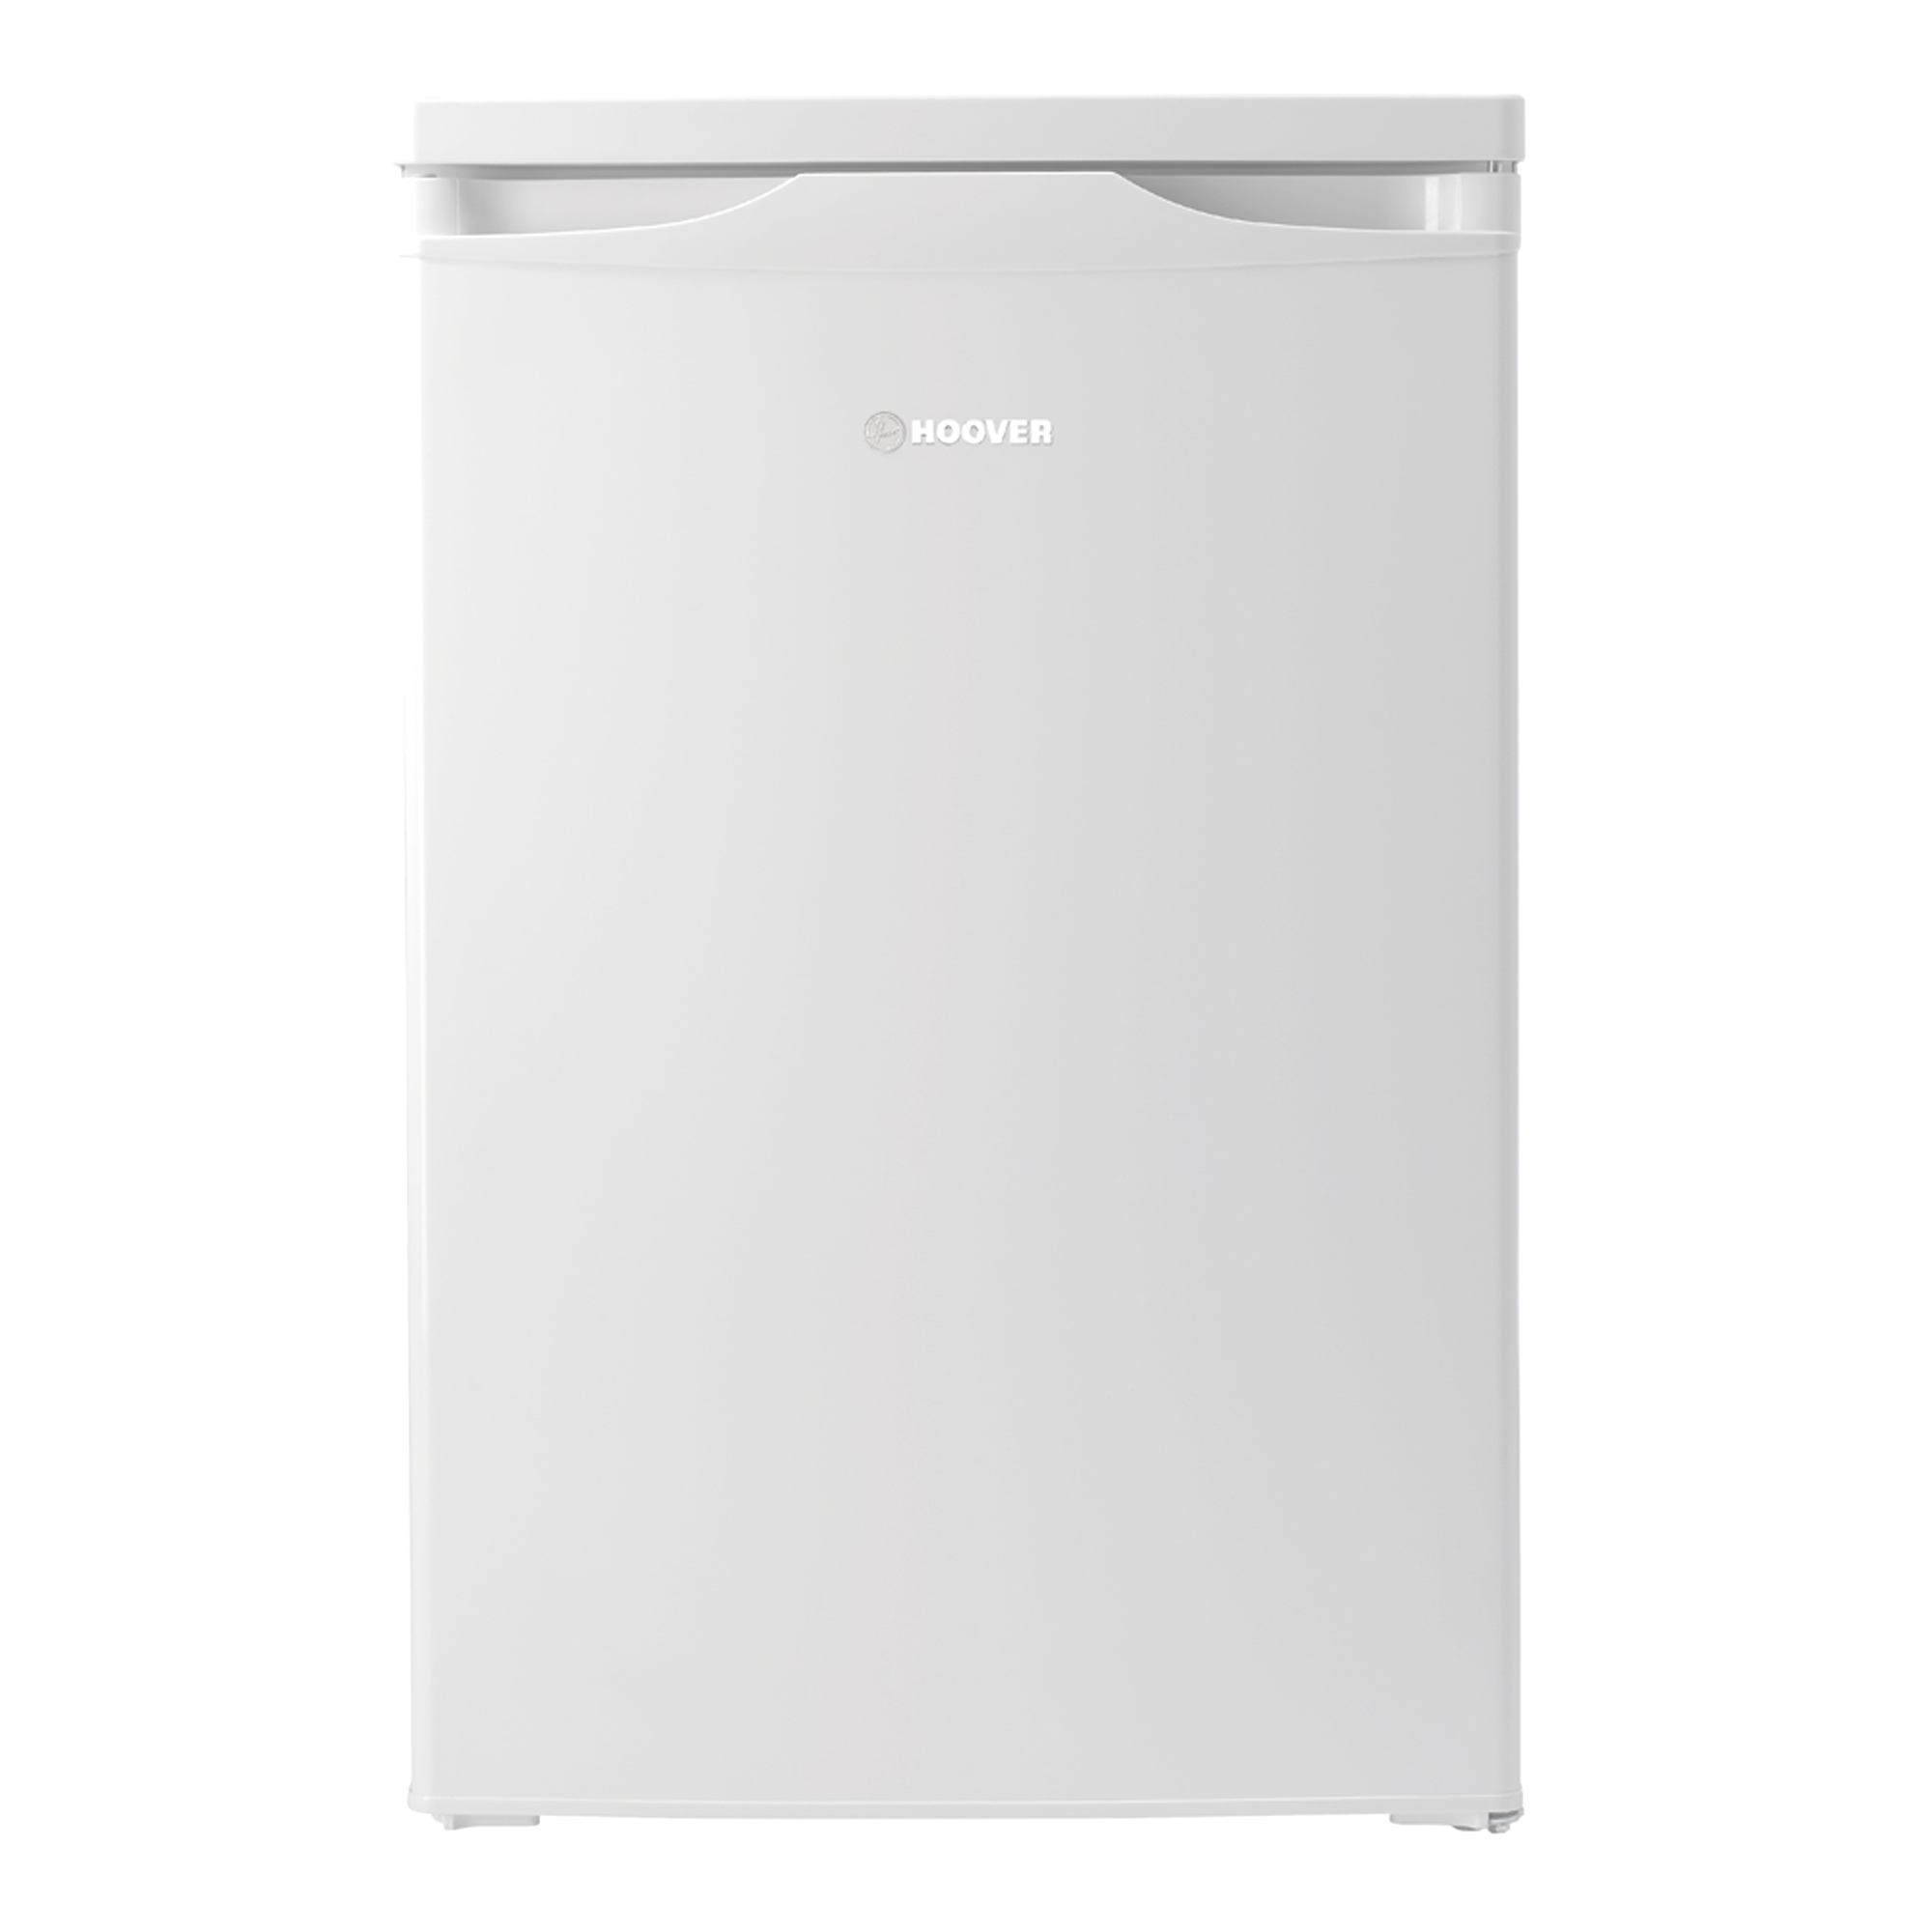 Hoover HFZE54W-MB 82L Upright Freezer